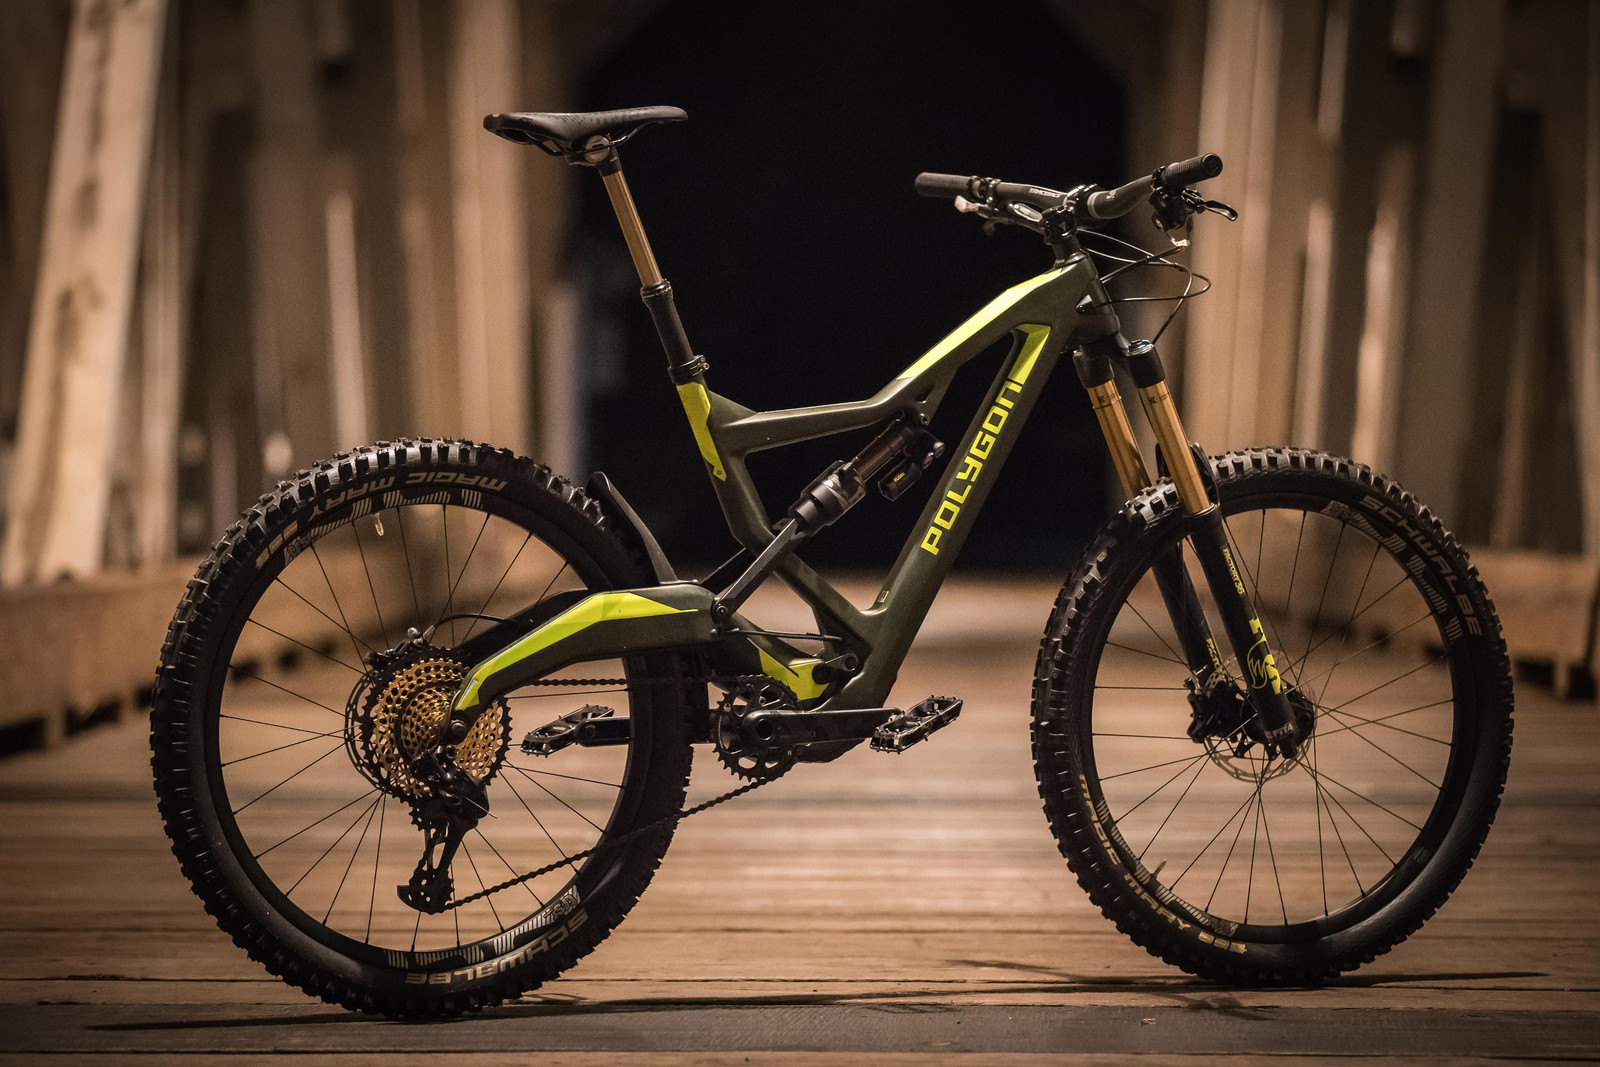 First Look: Polygon Square One EX Series Bikes - Mountain